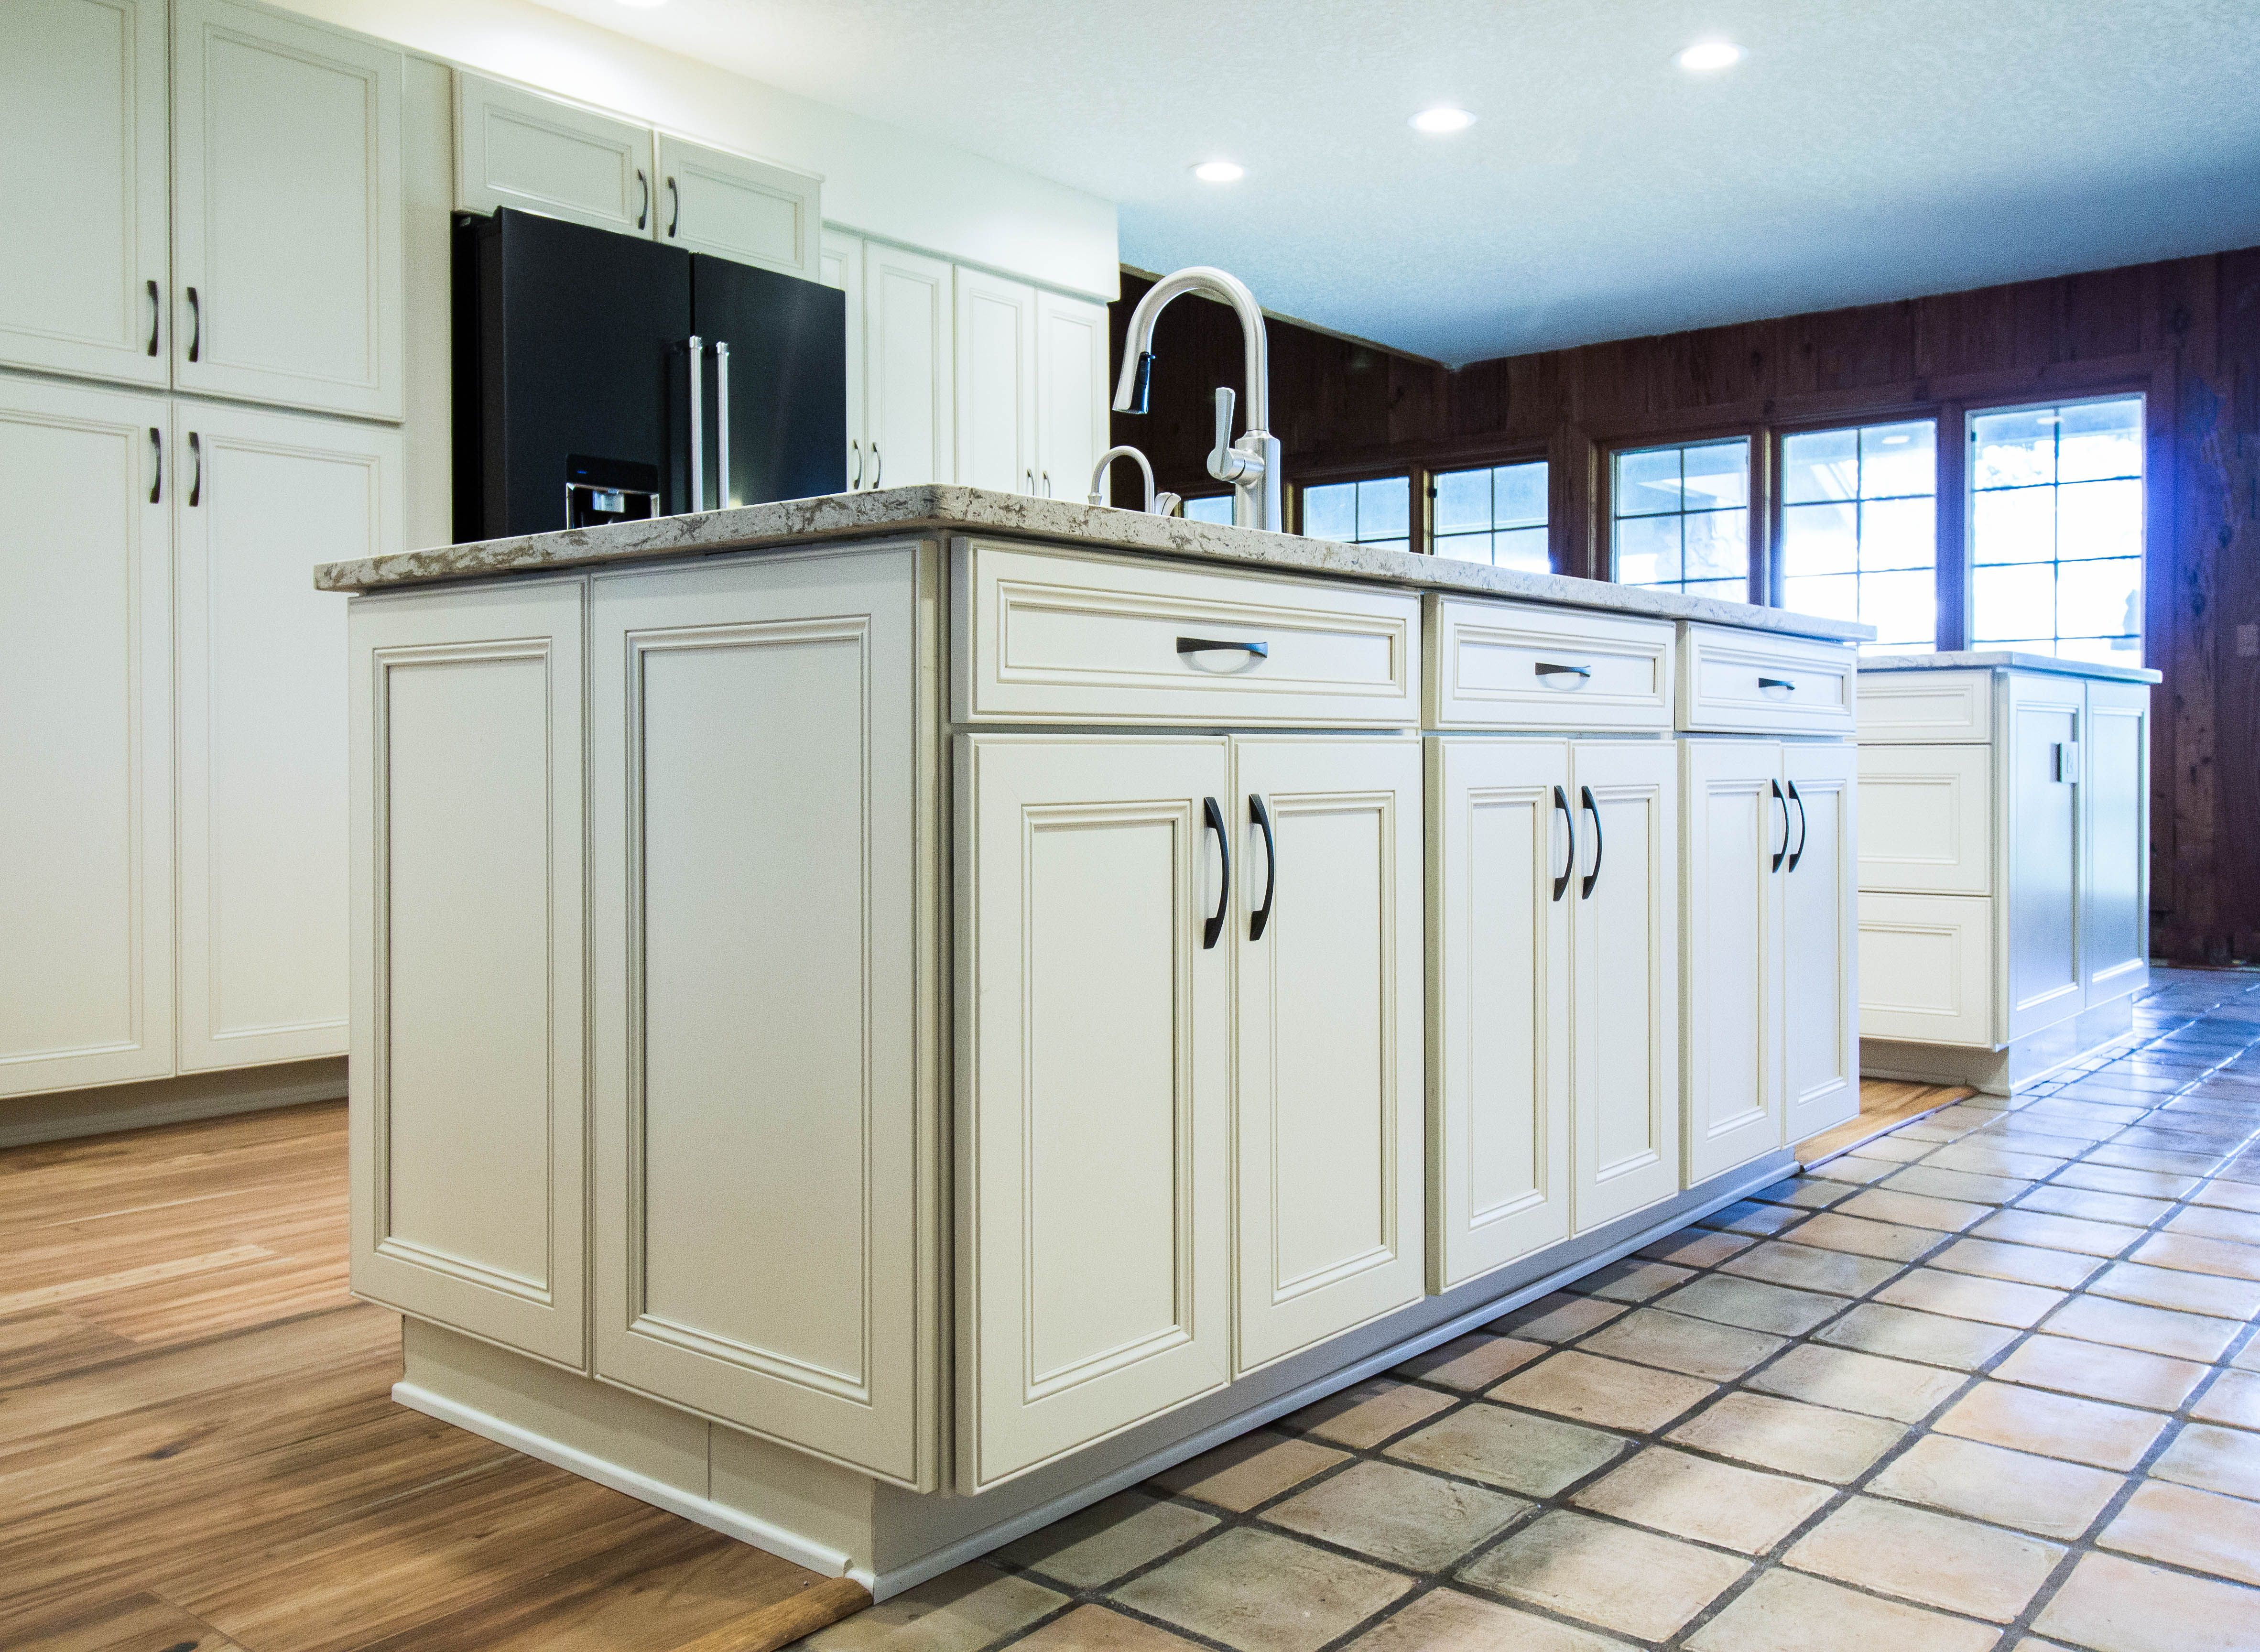 The Kitchen And Bathroom Remodeling Professionals At David Gray Design  Studio In Jacksonville, FL, Handle Your Renovation From Concept To  Completion.